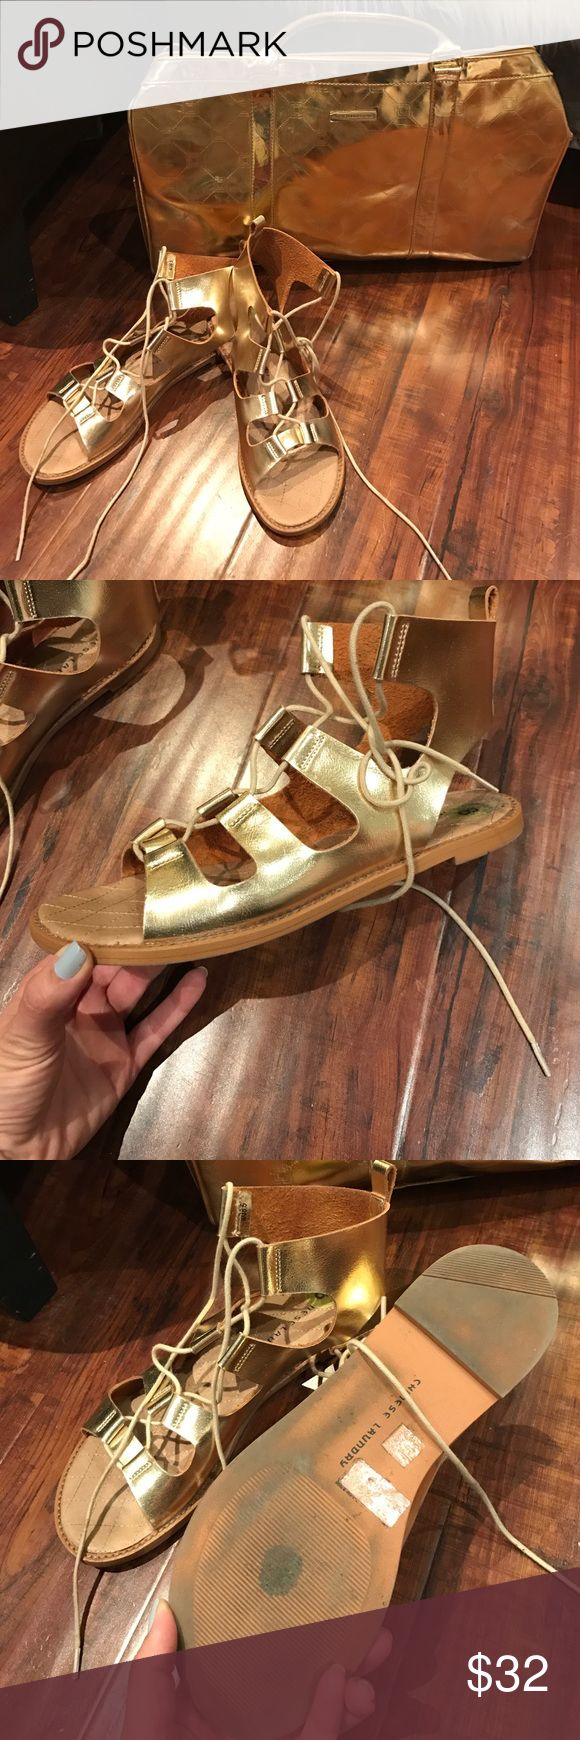 Chinese laundry ✨Golden✨ lace up Sandals! 💯 Genuine leather lace up sandals! Super cute sandals in excellent condition! Worn only couple of times! Very soft inside. The bag in the pic as also available for sale! Chinese Laundry Shoes Sandals